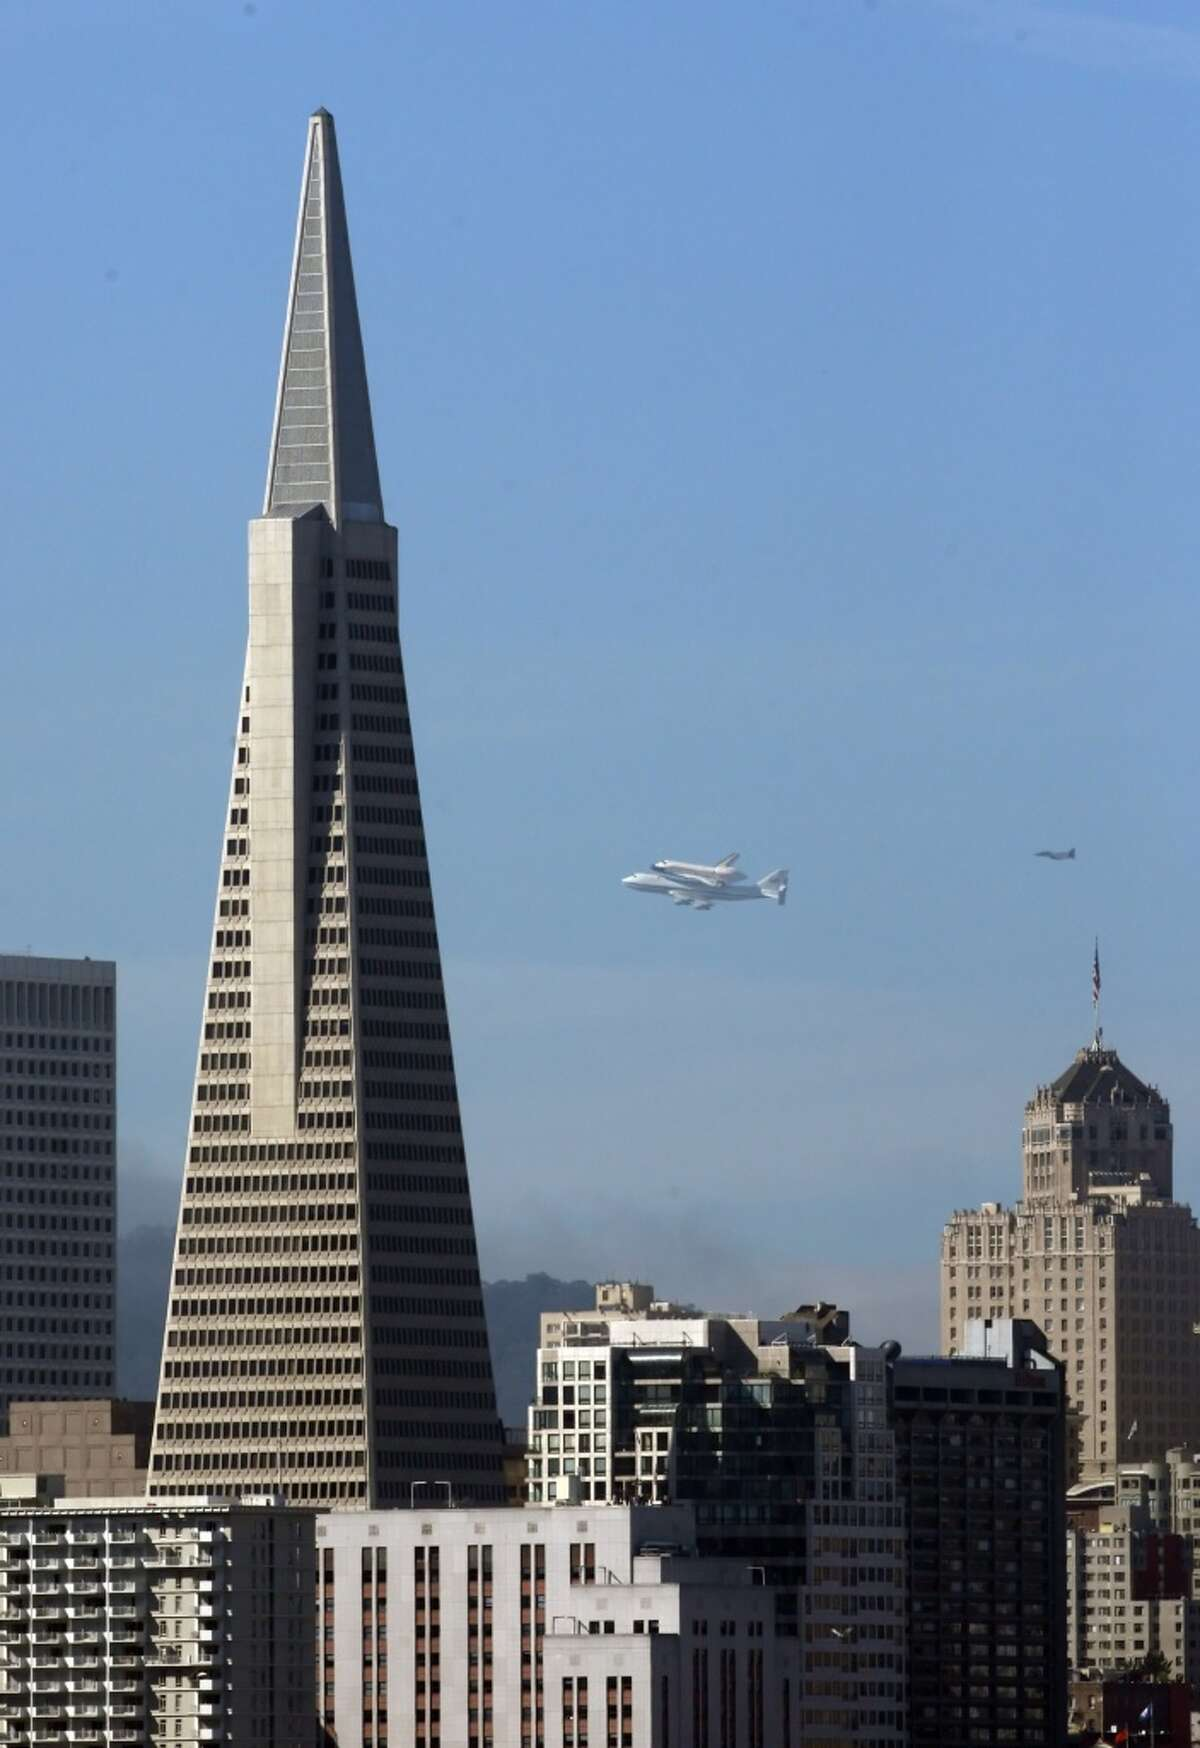 Transamerica Pyramid: As one of the tallest and most distinct buildings in S.F., the Transamerica Pyramid always stands out. According to Transamerica Pyramid officials, 4,000 to 5,000 people visited the Pyramid from April 2013 to December 2013.